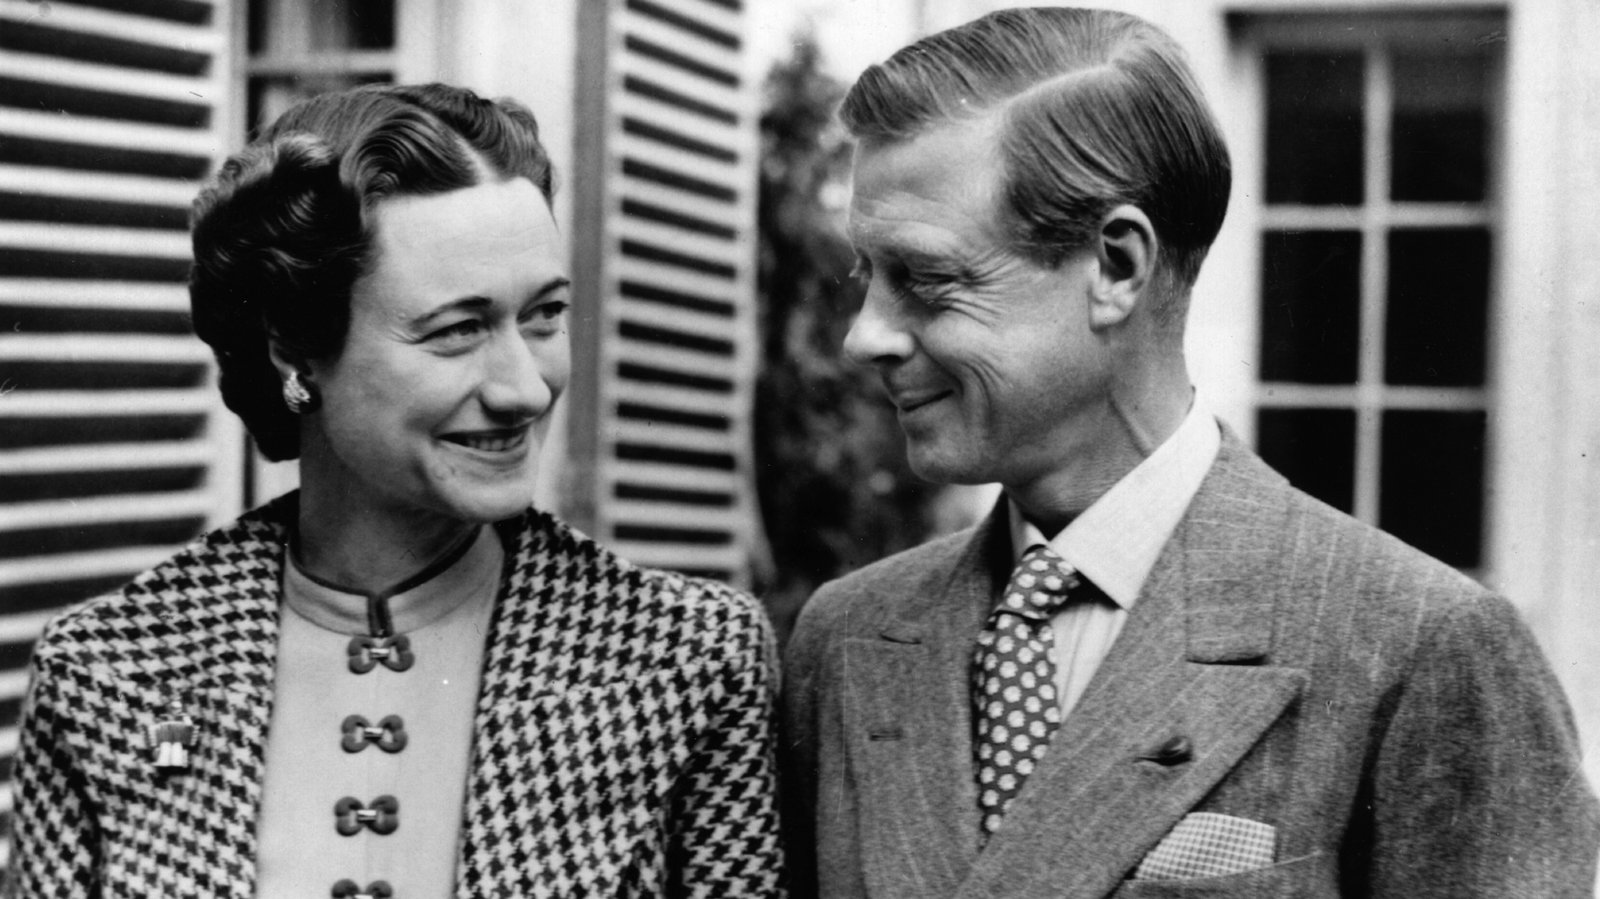 King Edward VIII had one of the most remarkable marriage proposals ever